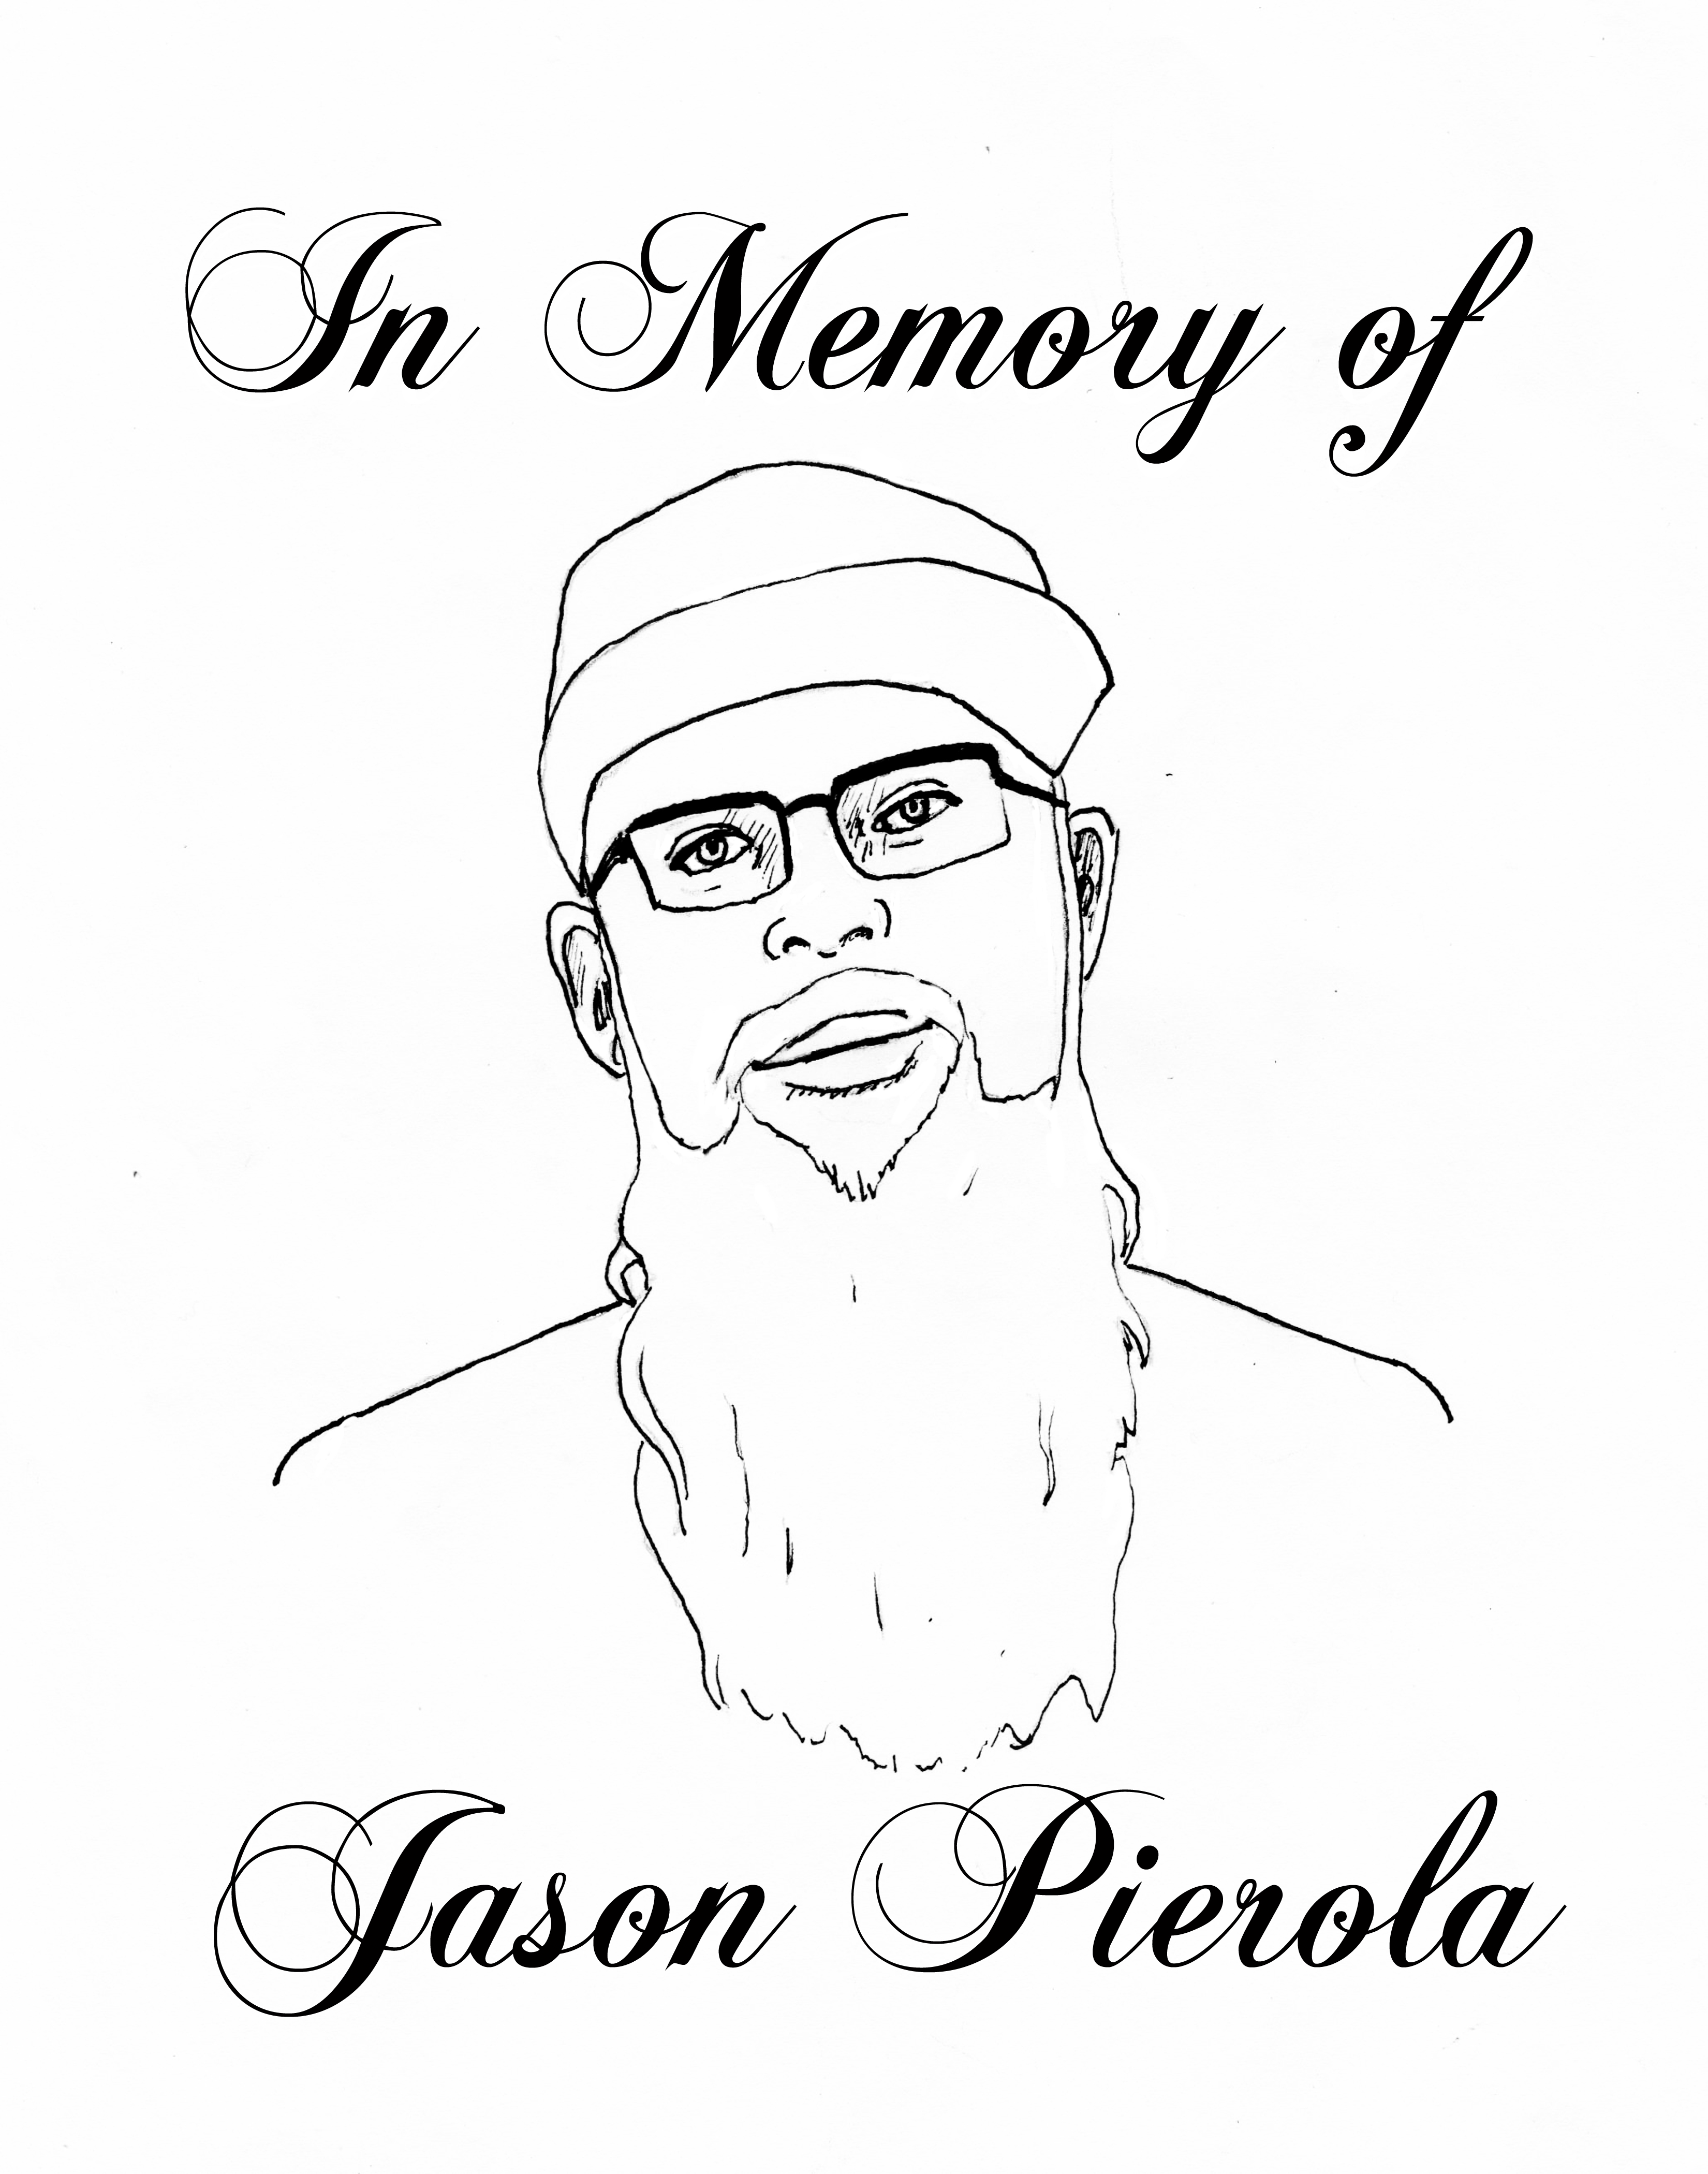 In Memory of Jason Pierola